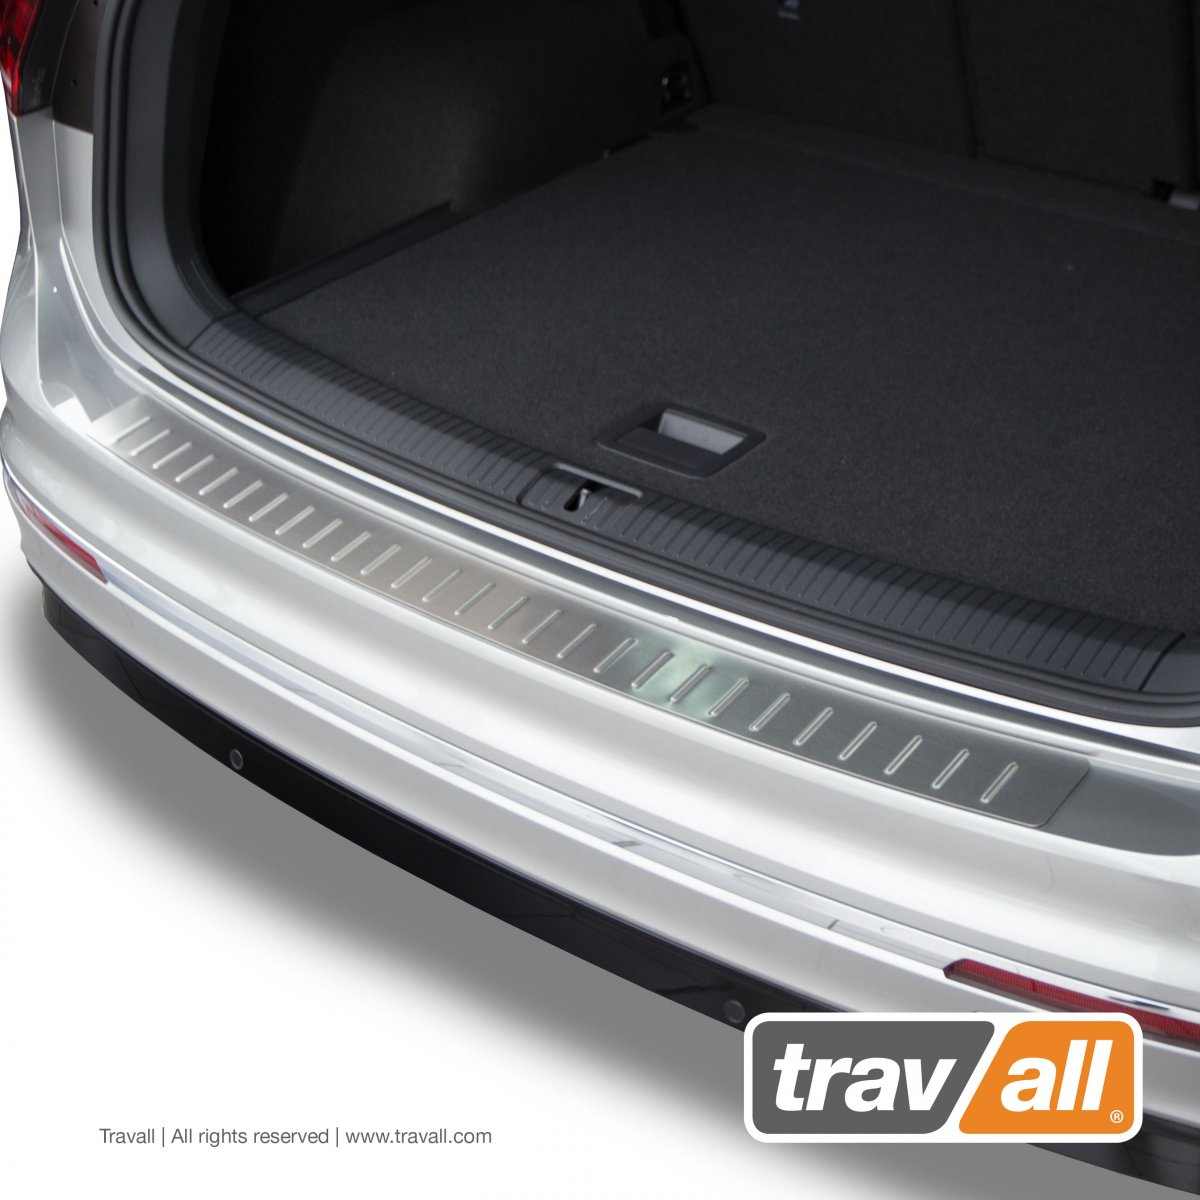 Travall® PROTECTOR-Stainless Steel for Volkswagen Tiguan (2016 >)